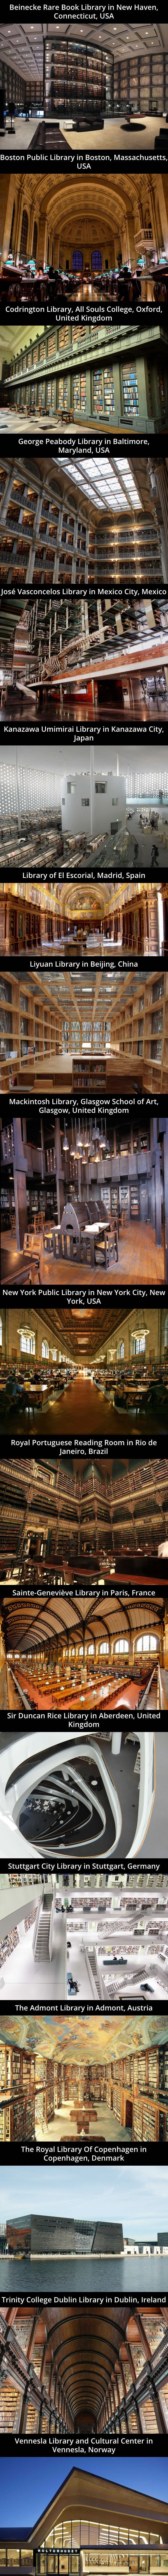 Grand libraries